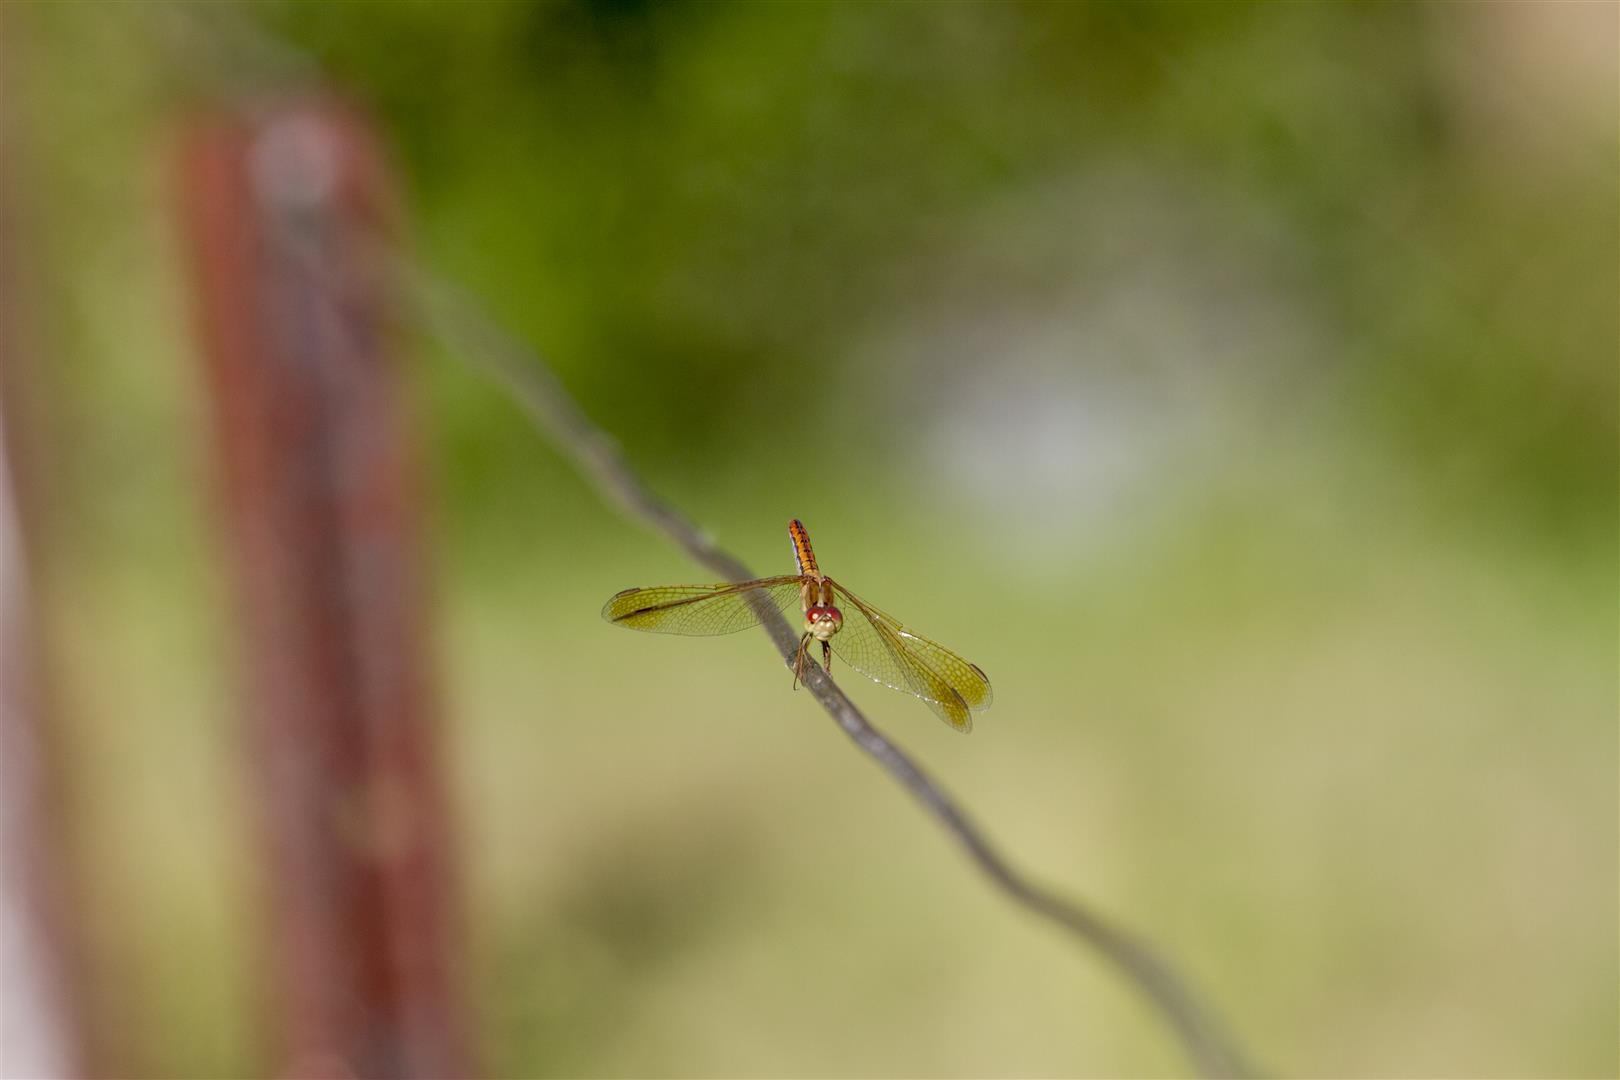 Stockyard Community Hall fence. A rust-coloured dragonfly on a wire fence.